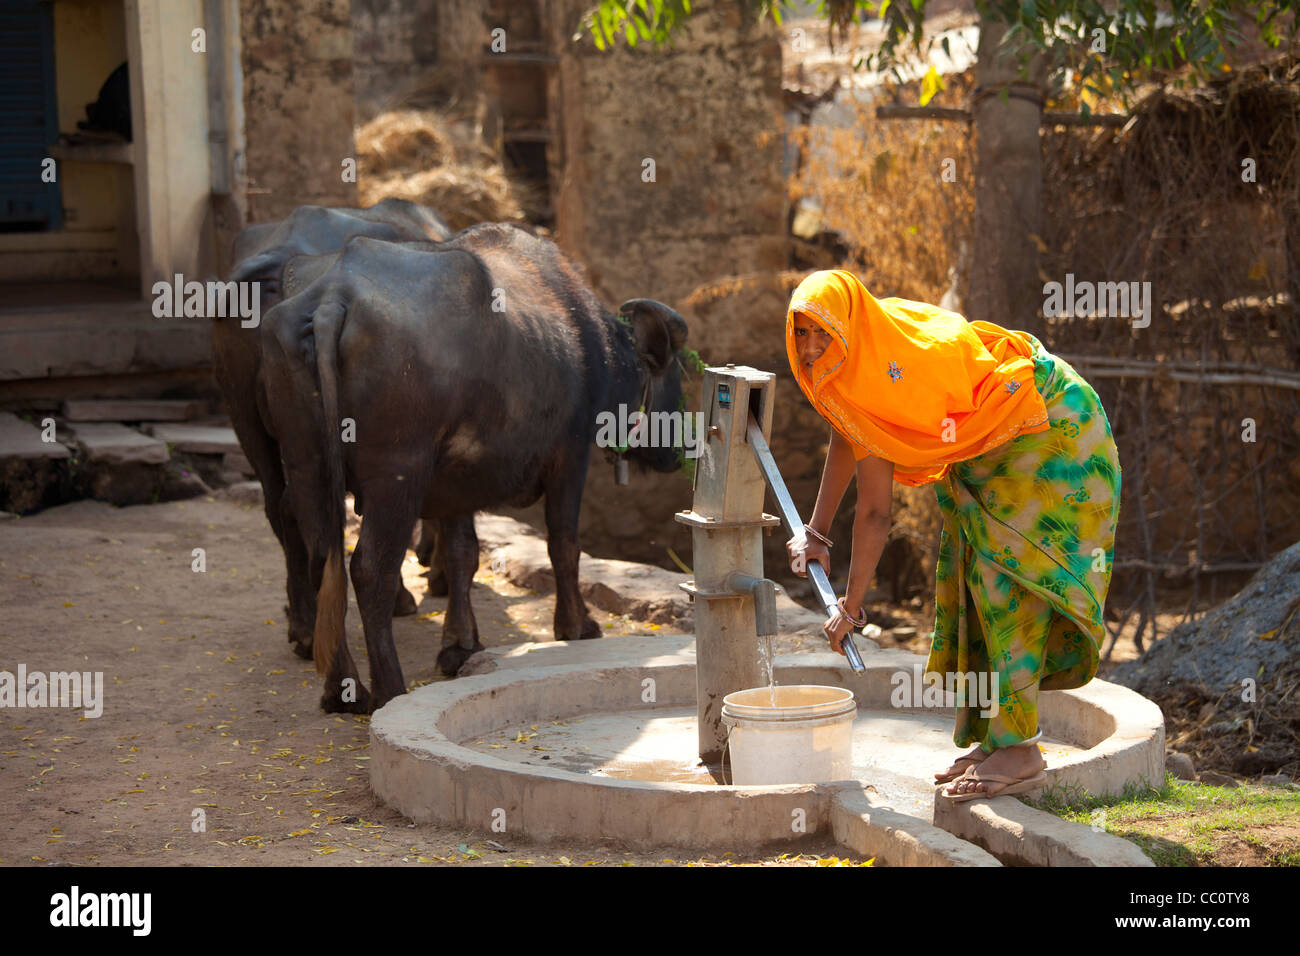 Indian woman villager pumping water from a well at Sawai Madhopur in Rajasthan, Northern India - Stock Image